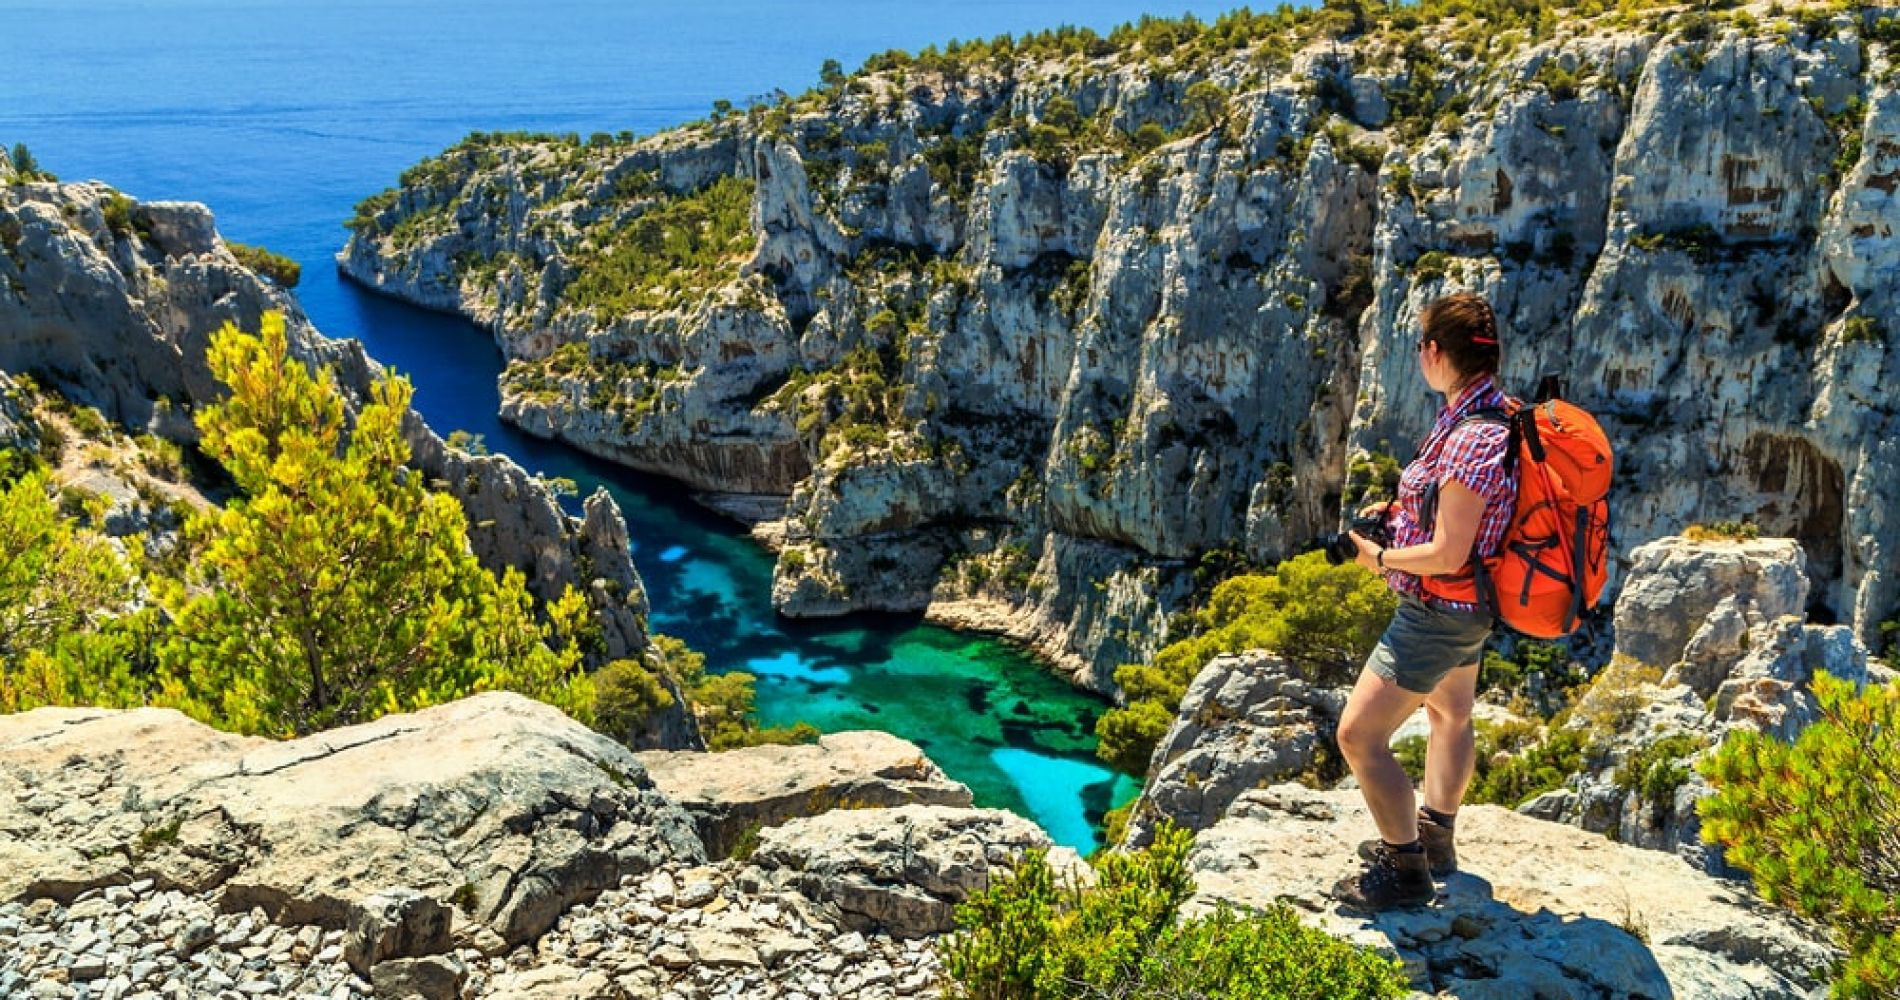 Hike in Parc National des Calanques near Marseille